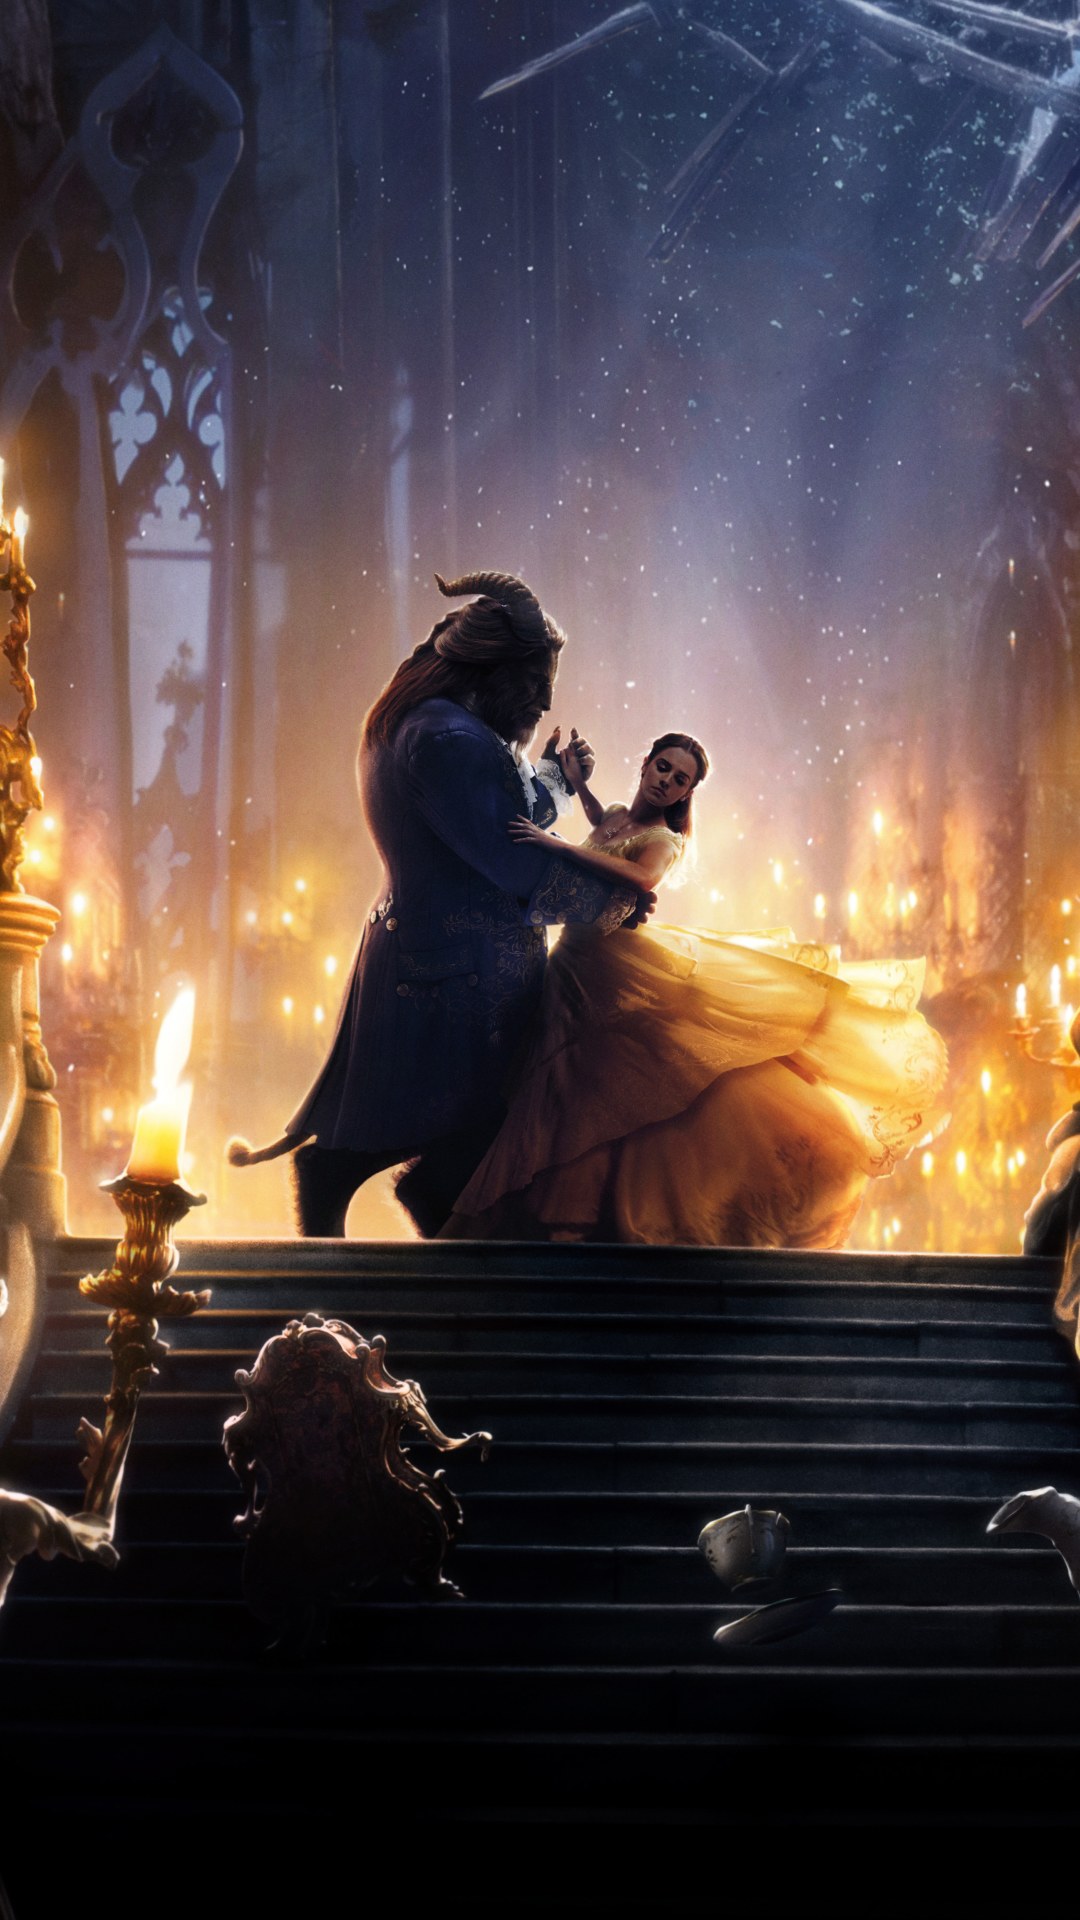 Download Beauty And The Beast Iphone Wallpaper Gallery